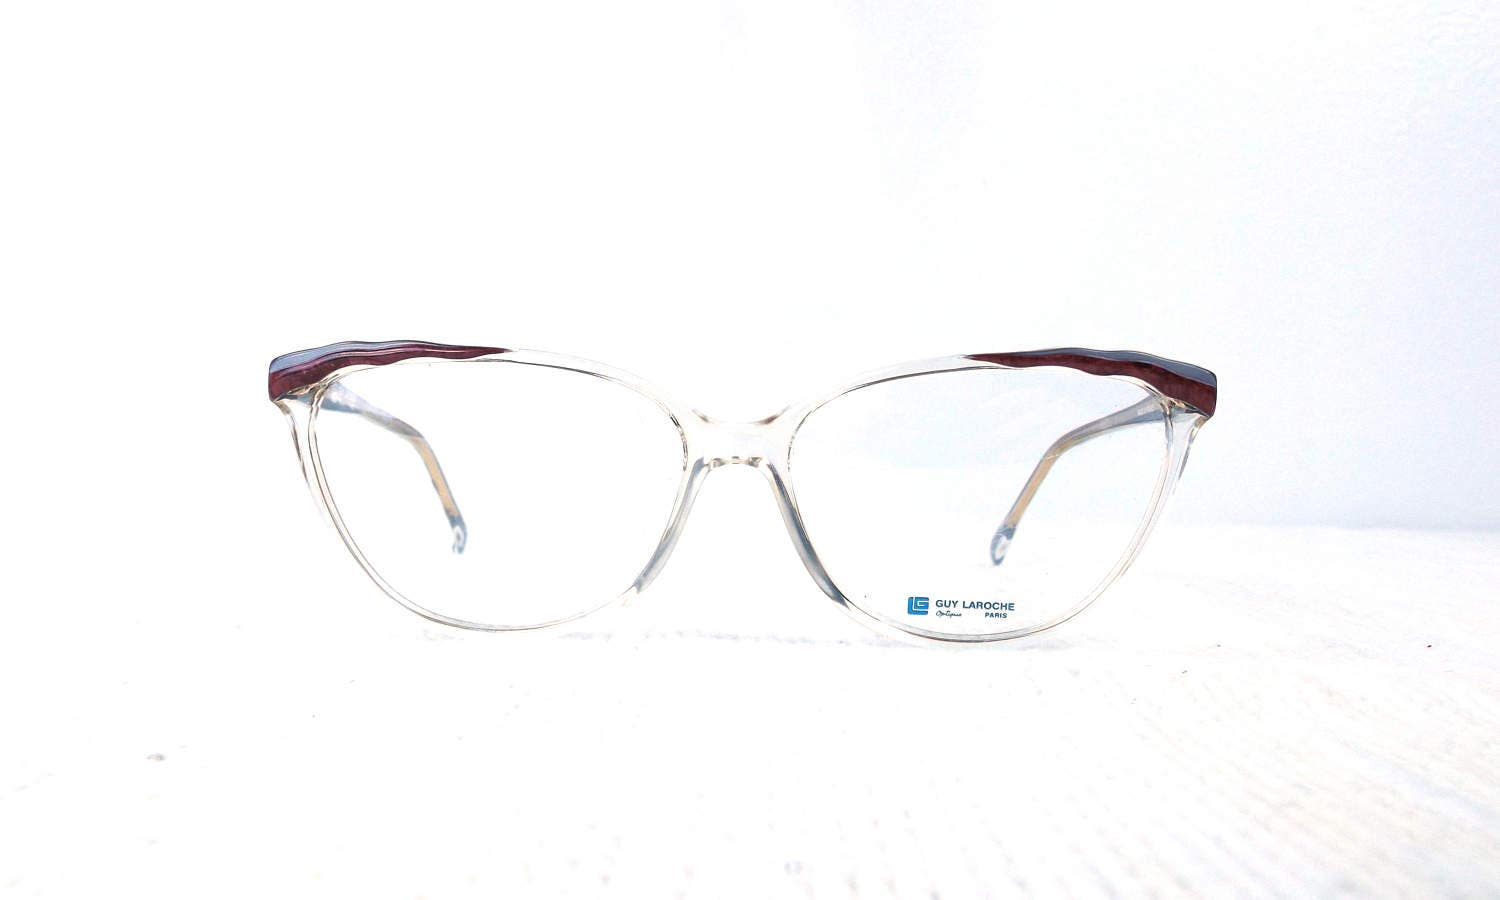 7d1b73fbdc vintage 70s cat eye eyeglasses guy laroche acetate oversize frames glasses  eyewear crystal clear designer layered